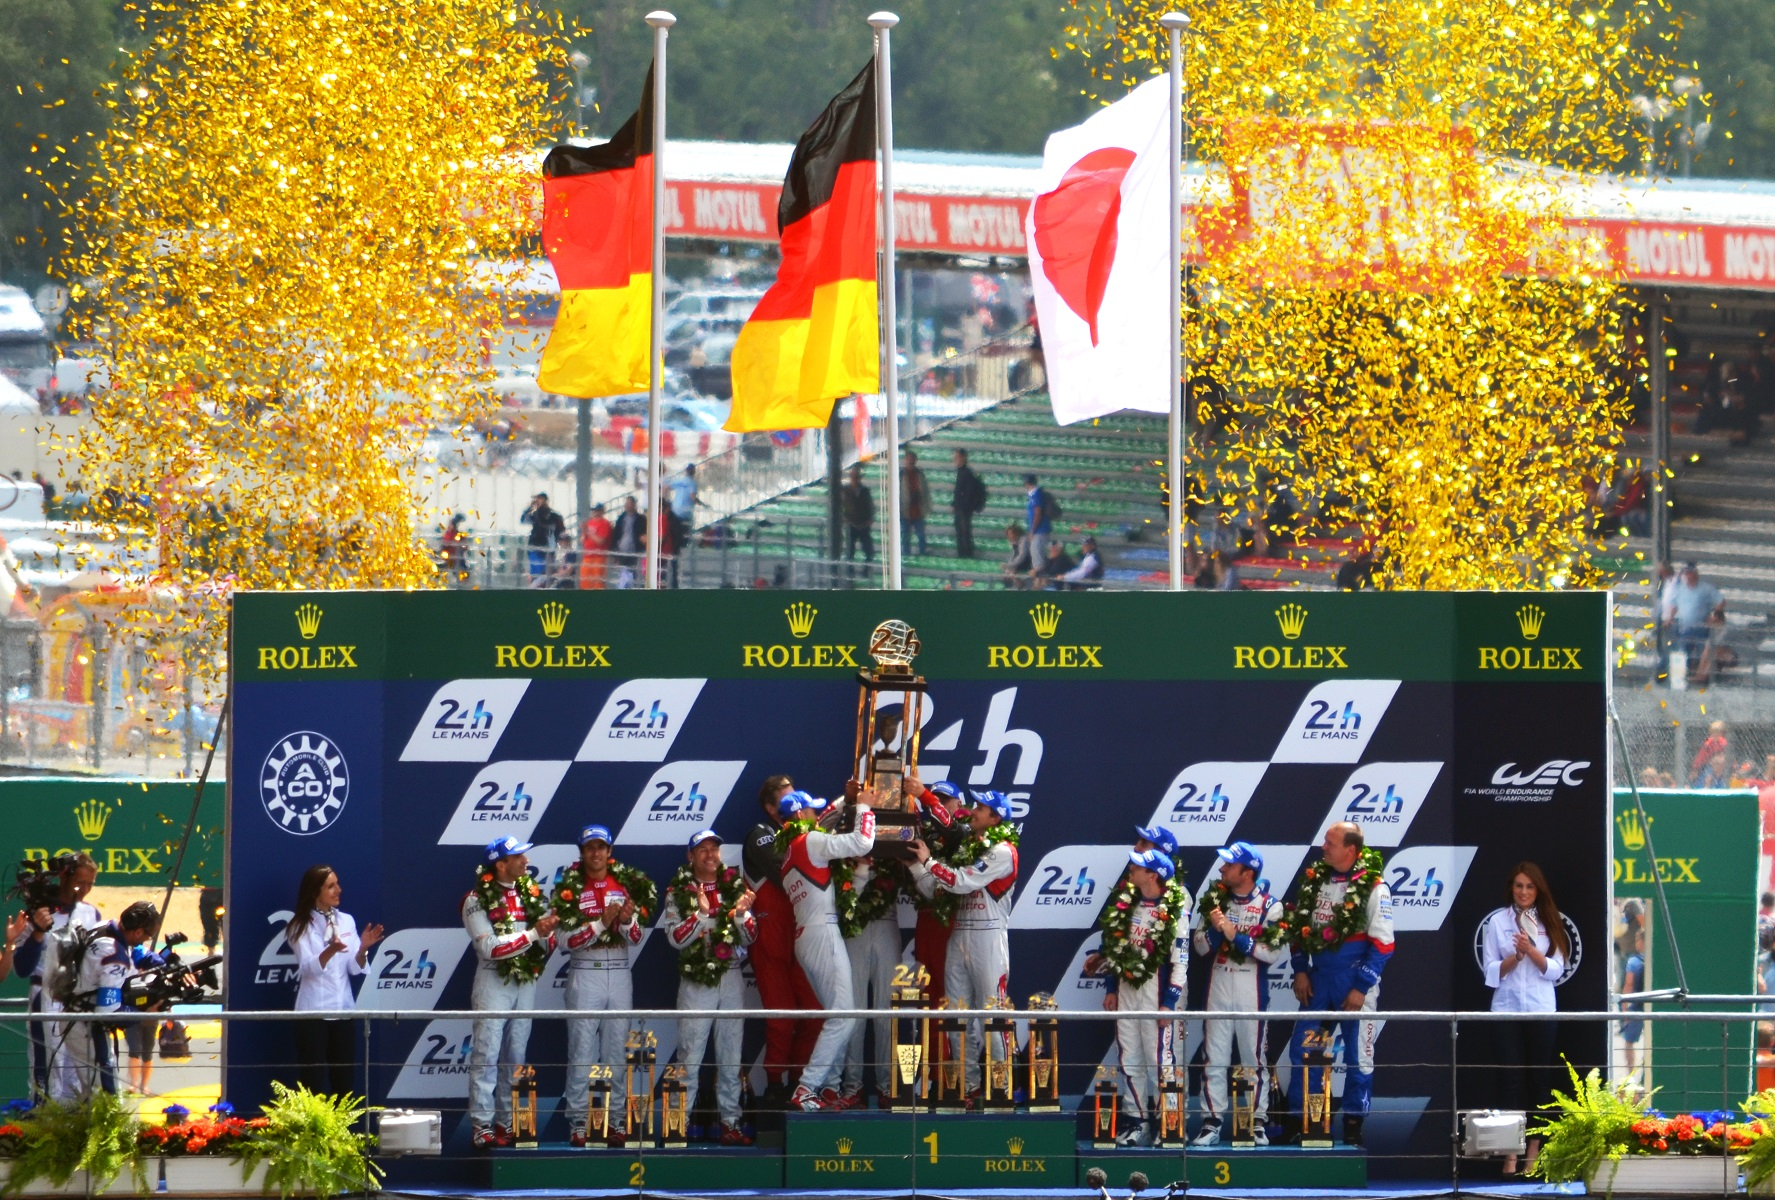 2014_le_mans_podium_wide.jpg